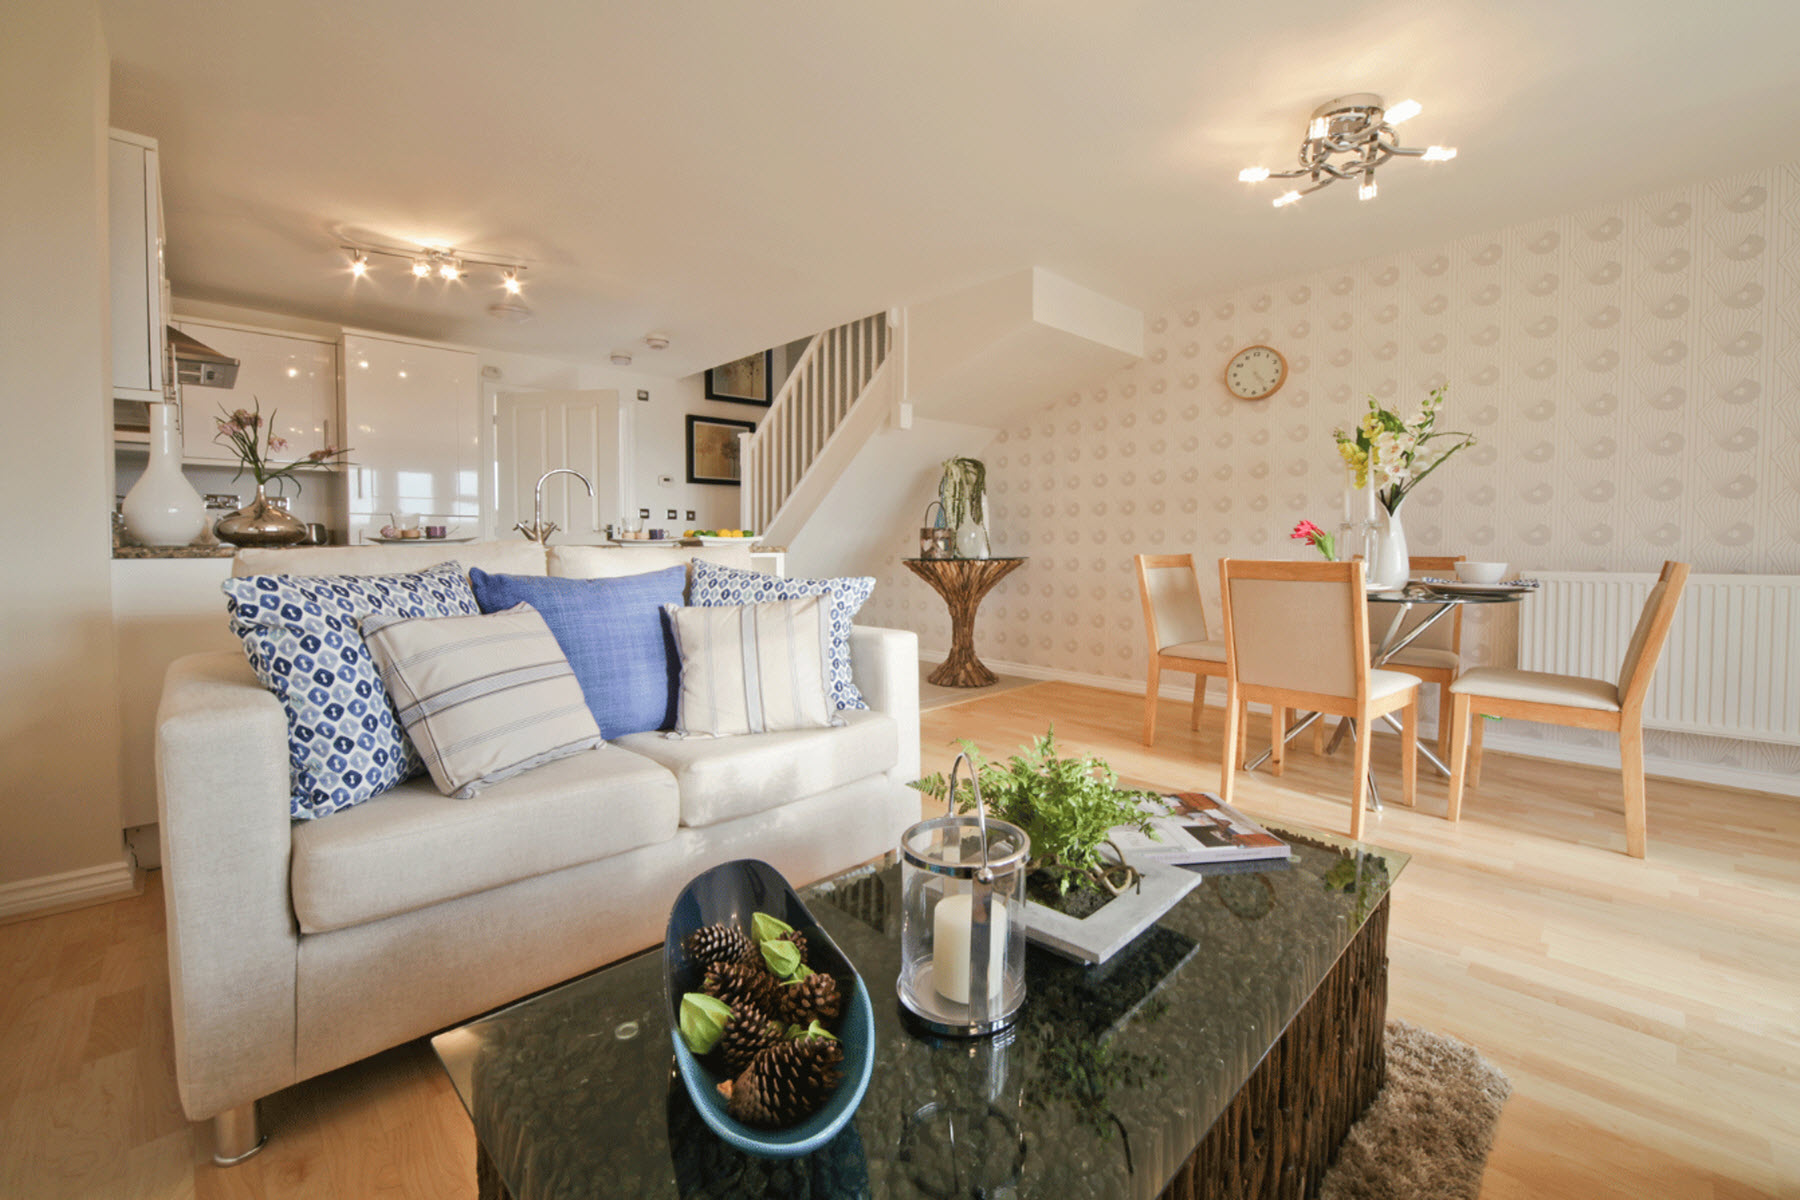 TW Exeter - Mayfield Gardens - Ashenford example living room 2